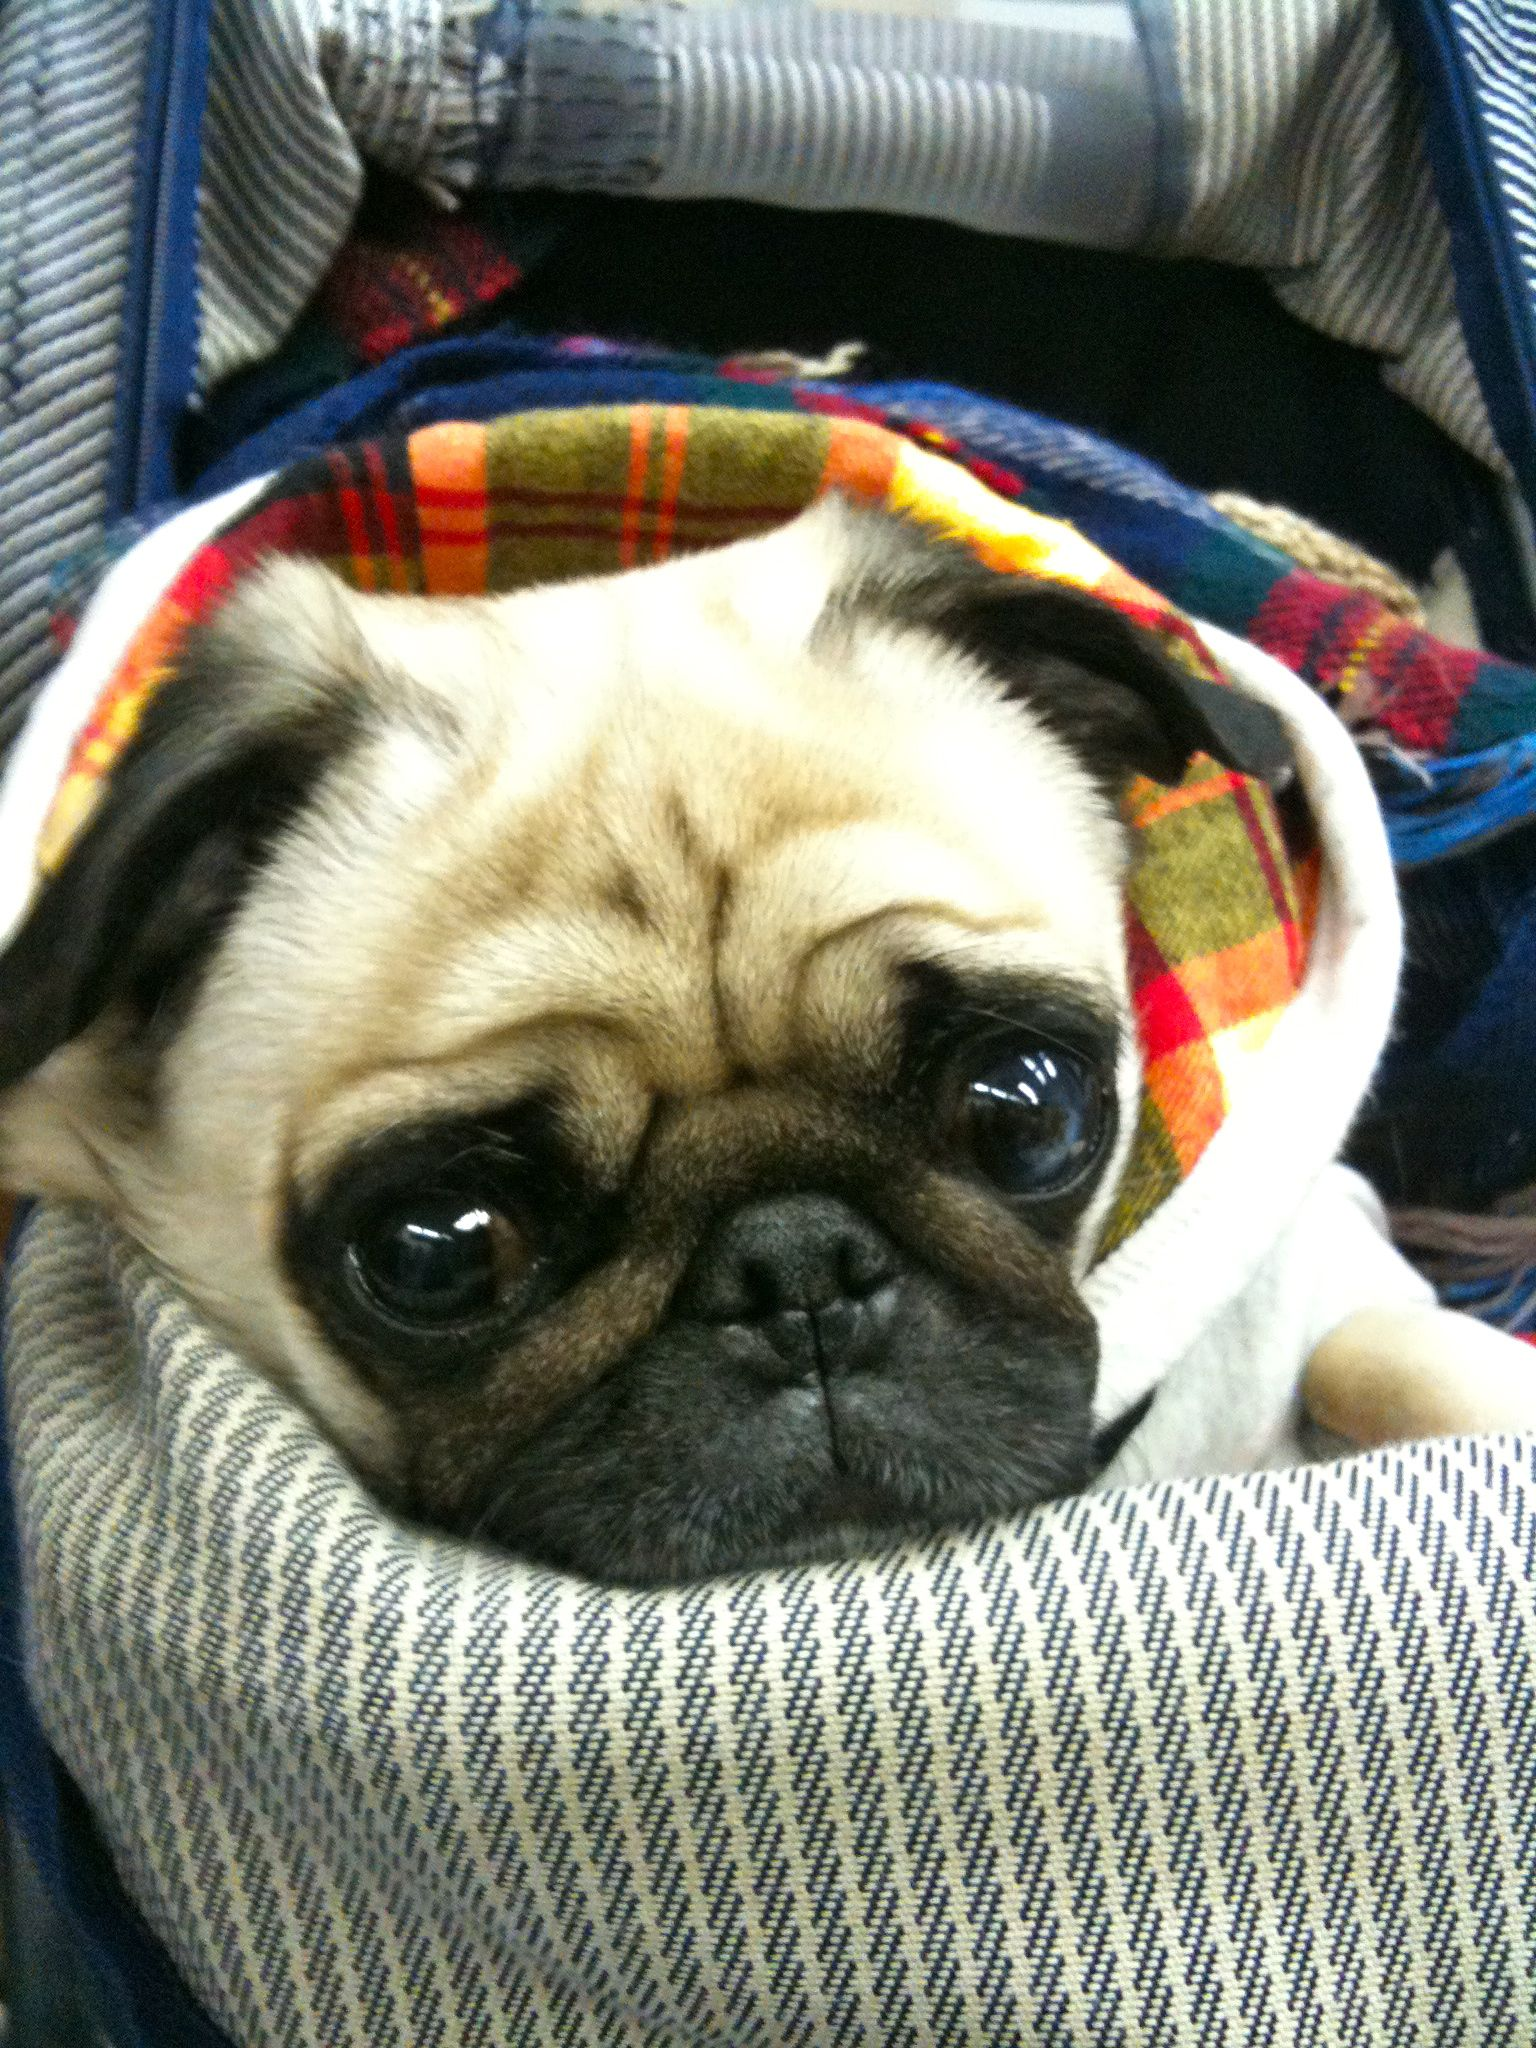 are we leaving yet??? #Cheeze | Cute Dogs | Pugs, Cute ...